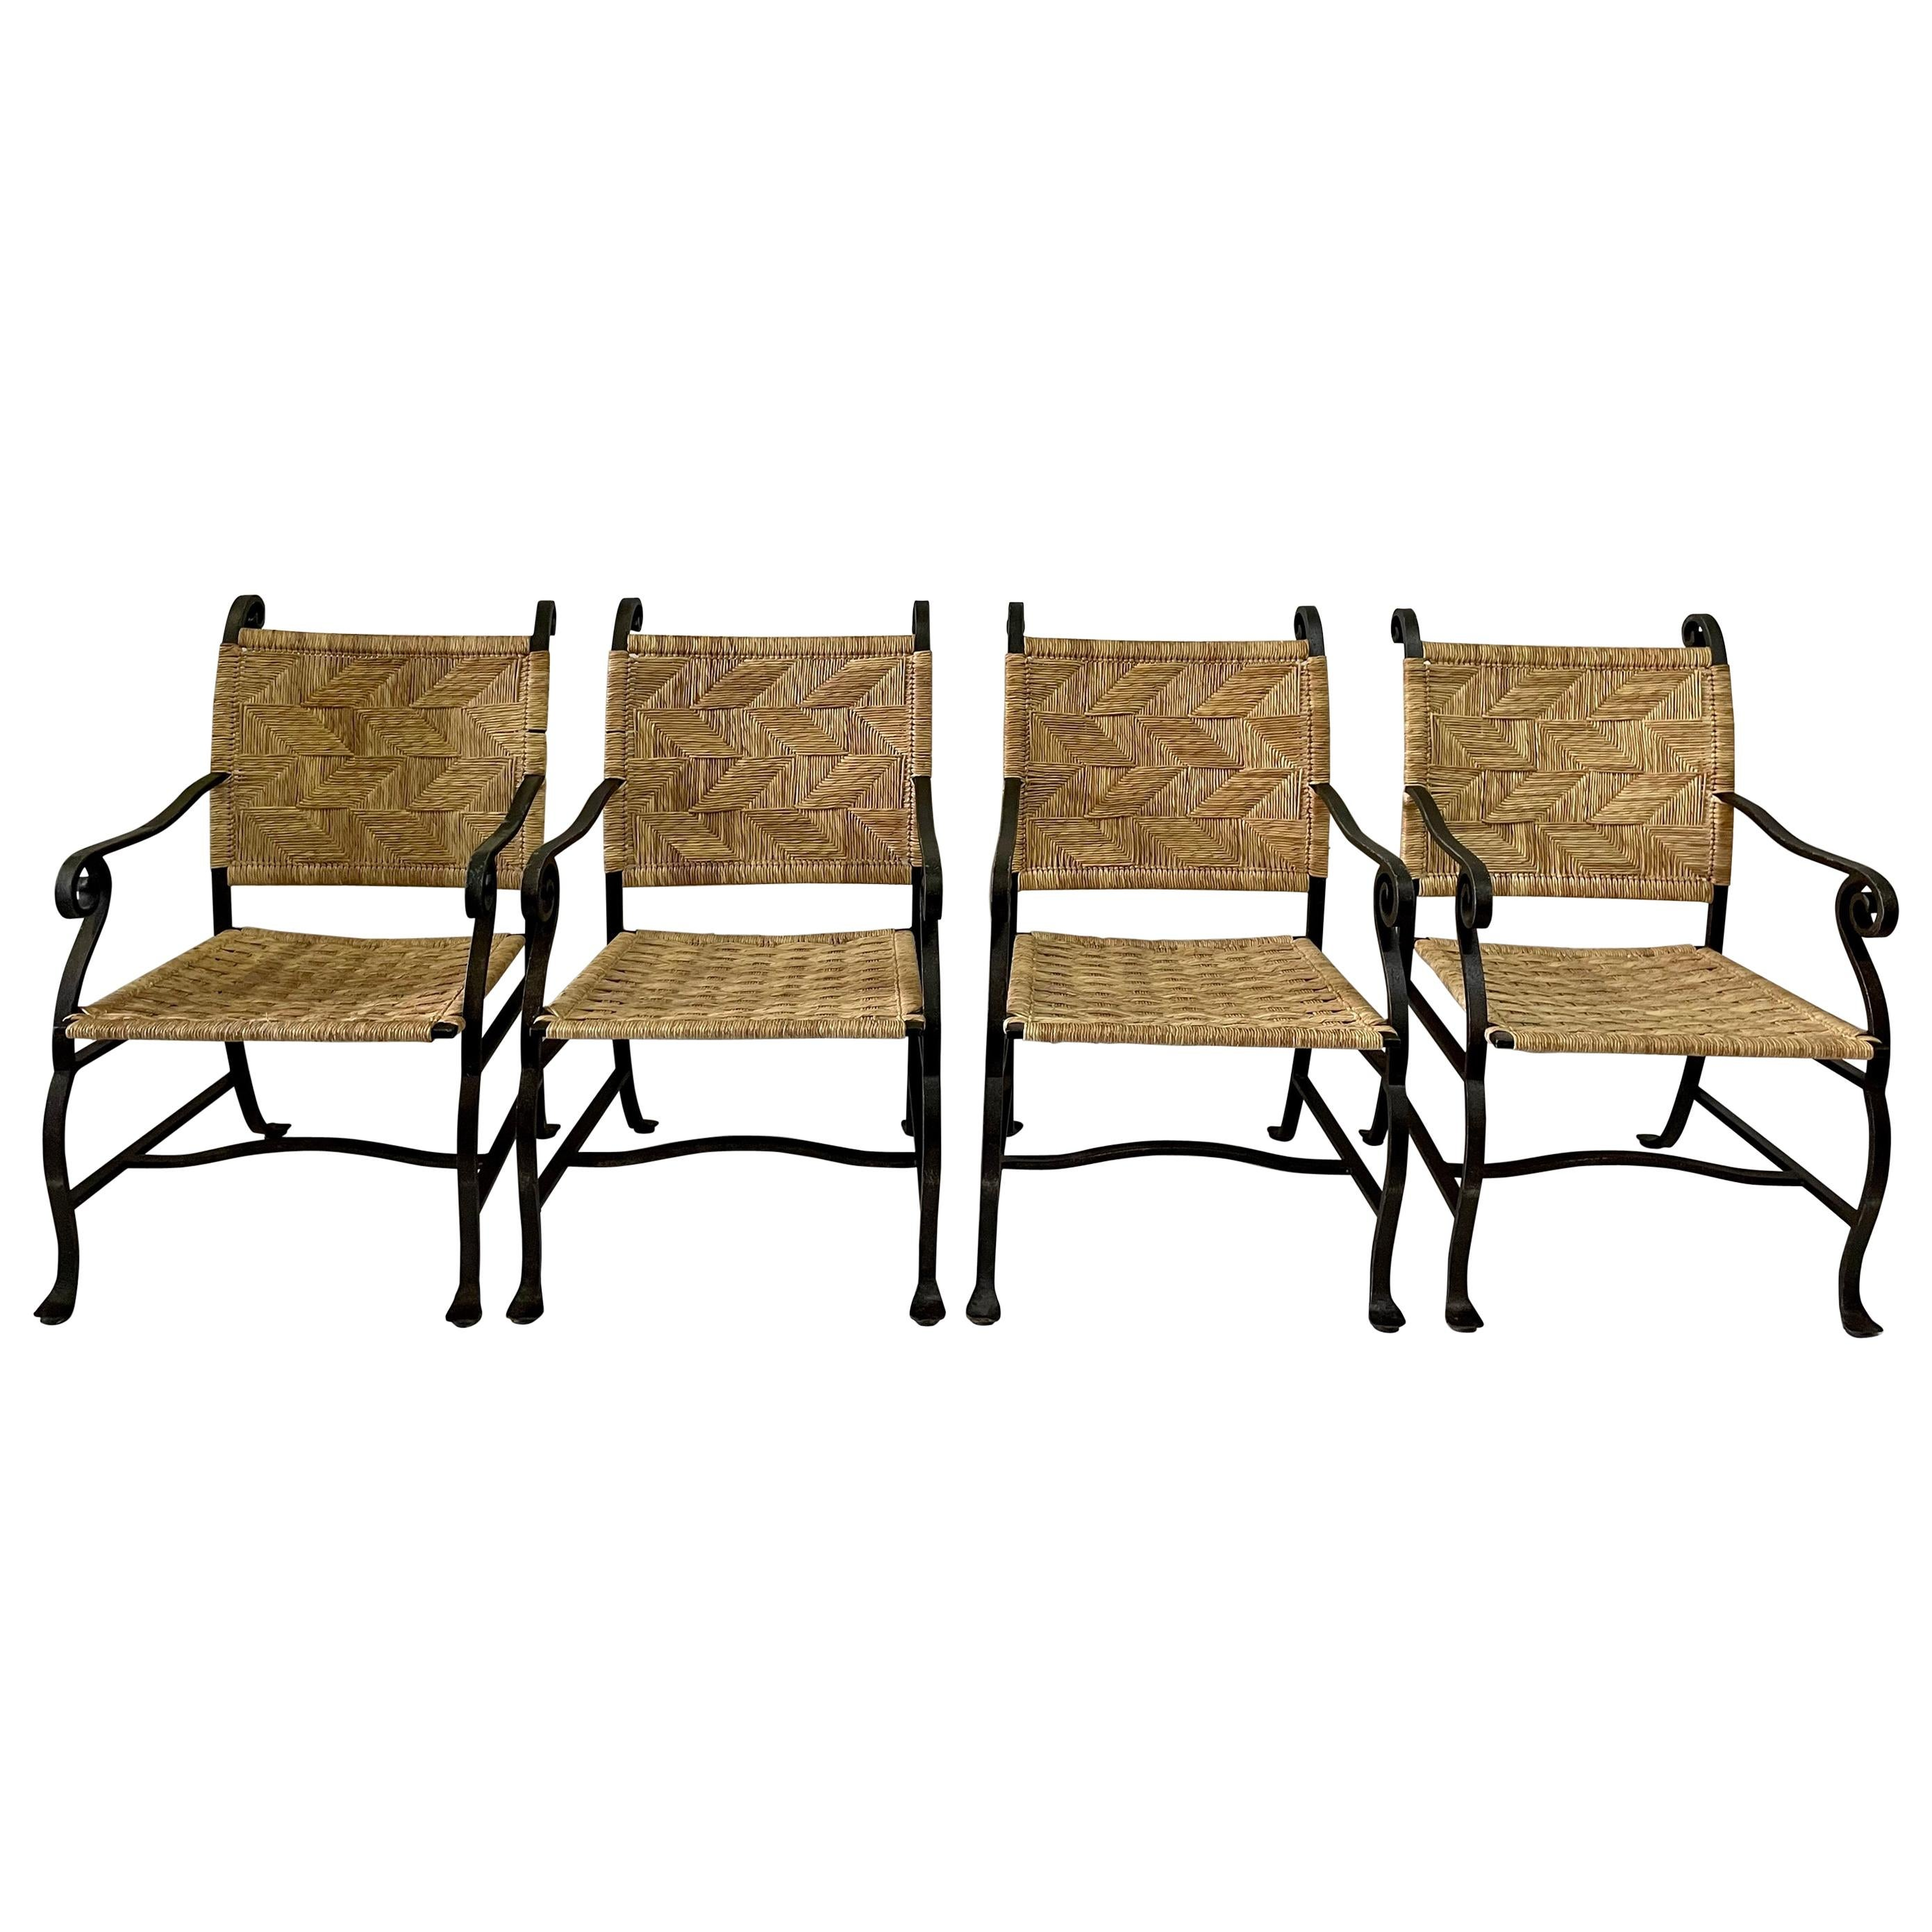 4 hand wrought iron and woven raffia armchairs